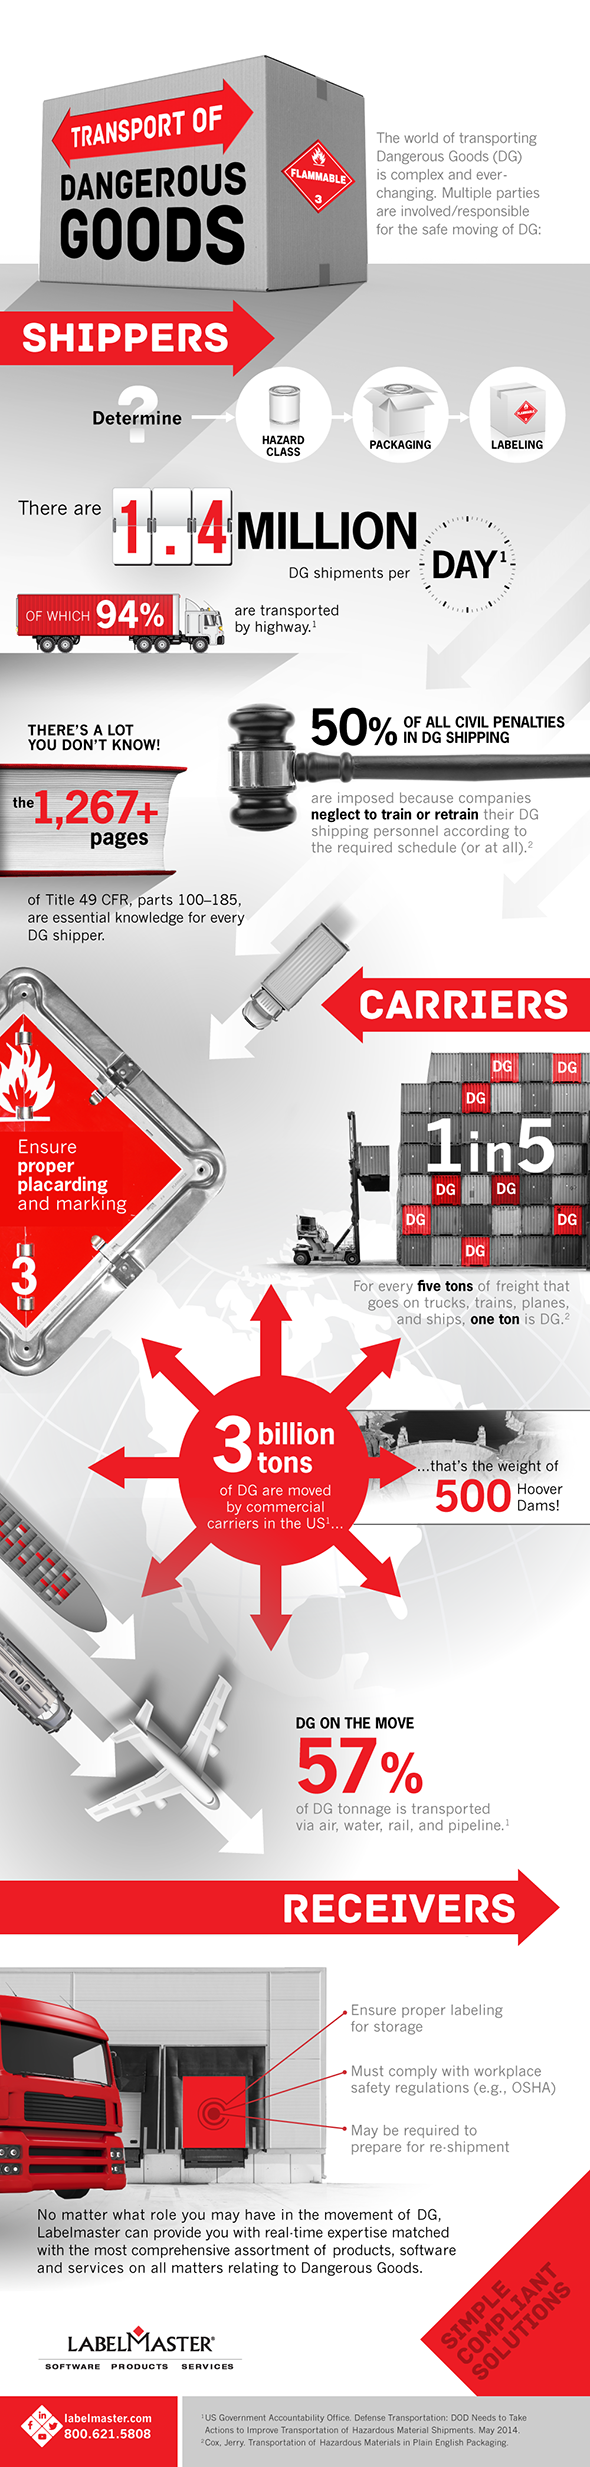 Infographic | The Movement of Dangerous Goods